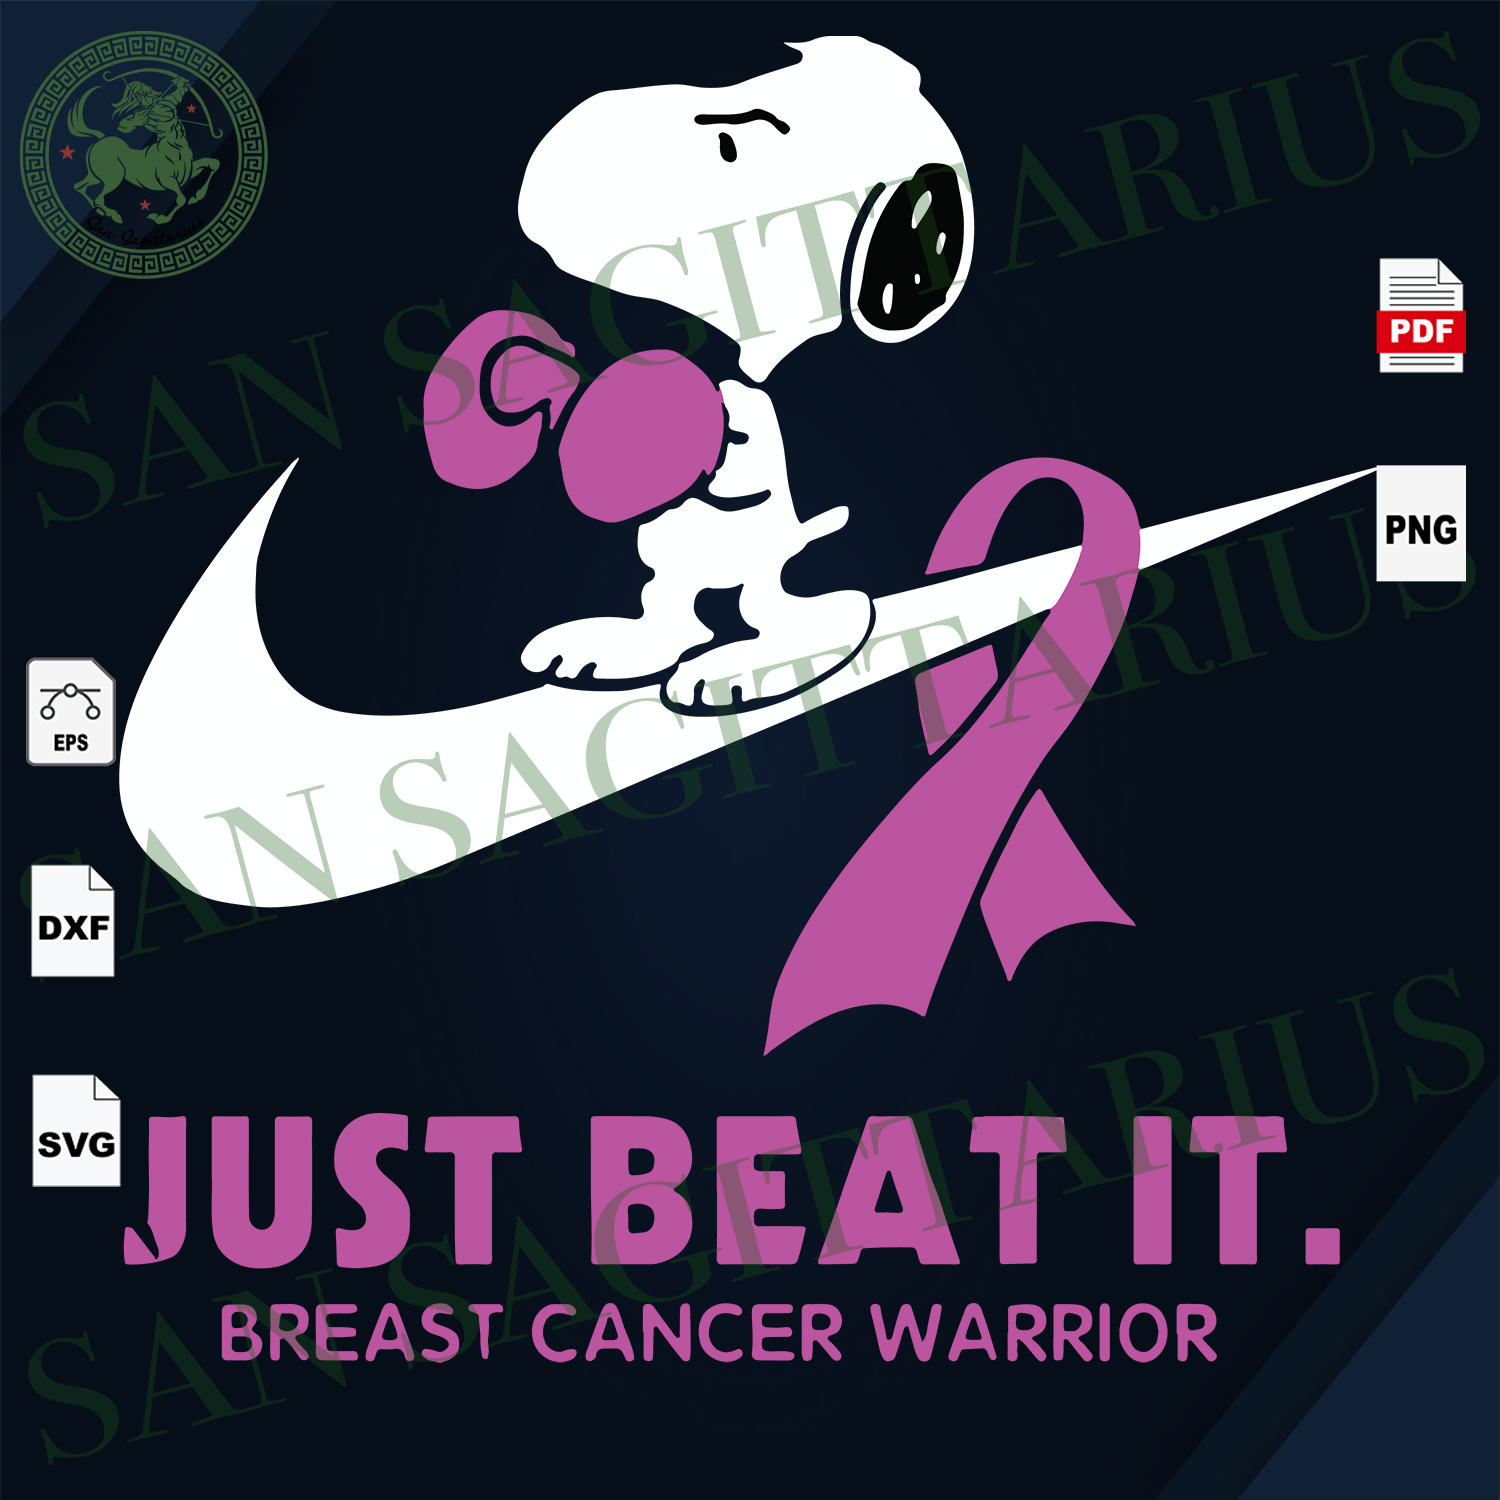 Just Beat It, Breast Cancer Warrior, Snoopy, Snoopy Svg, Nike, Snoopy Nike Svg, Breast Cancer Svg, Cancer Awareness, Cancer Ribbon Svg, Breast Cancer Ribbon, Breast Cancer Anniversary, Breast